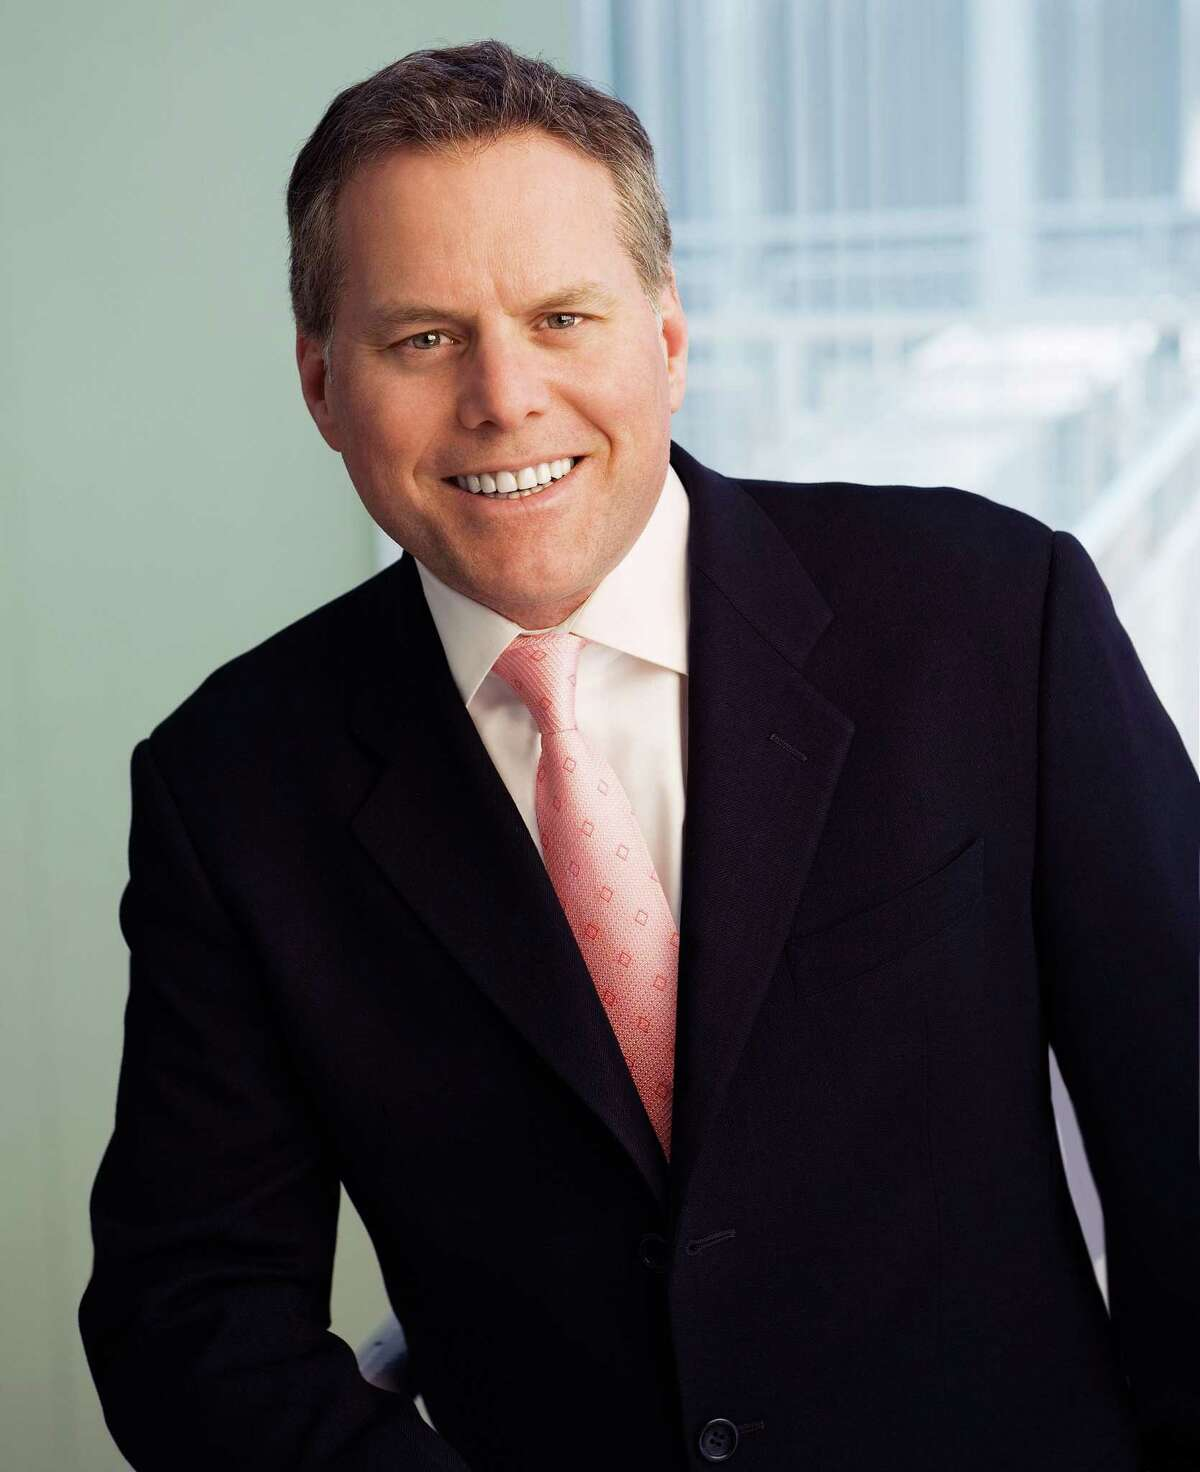 Discovery Communications CEO David Zaslav. Zaslav was the highest paid CEO in 2014, according to a study carried out by executive compensation data firm Equilar and The Associated Press.